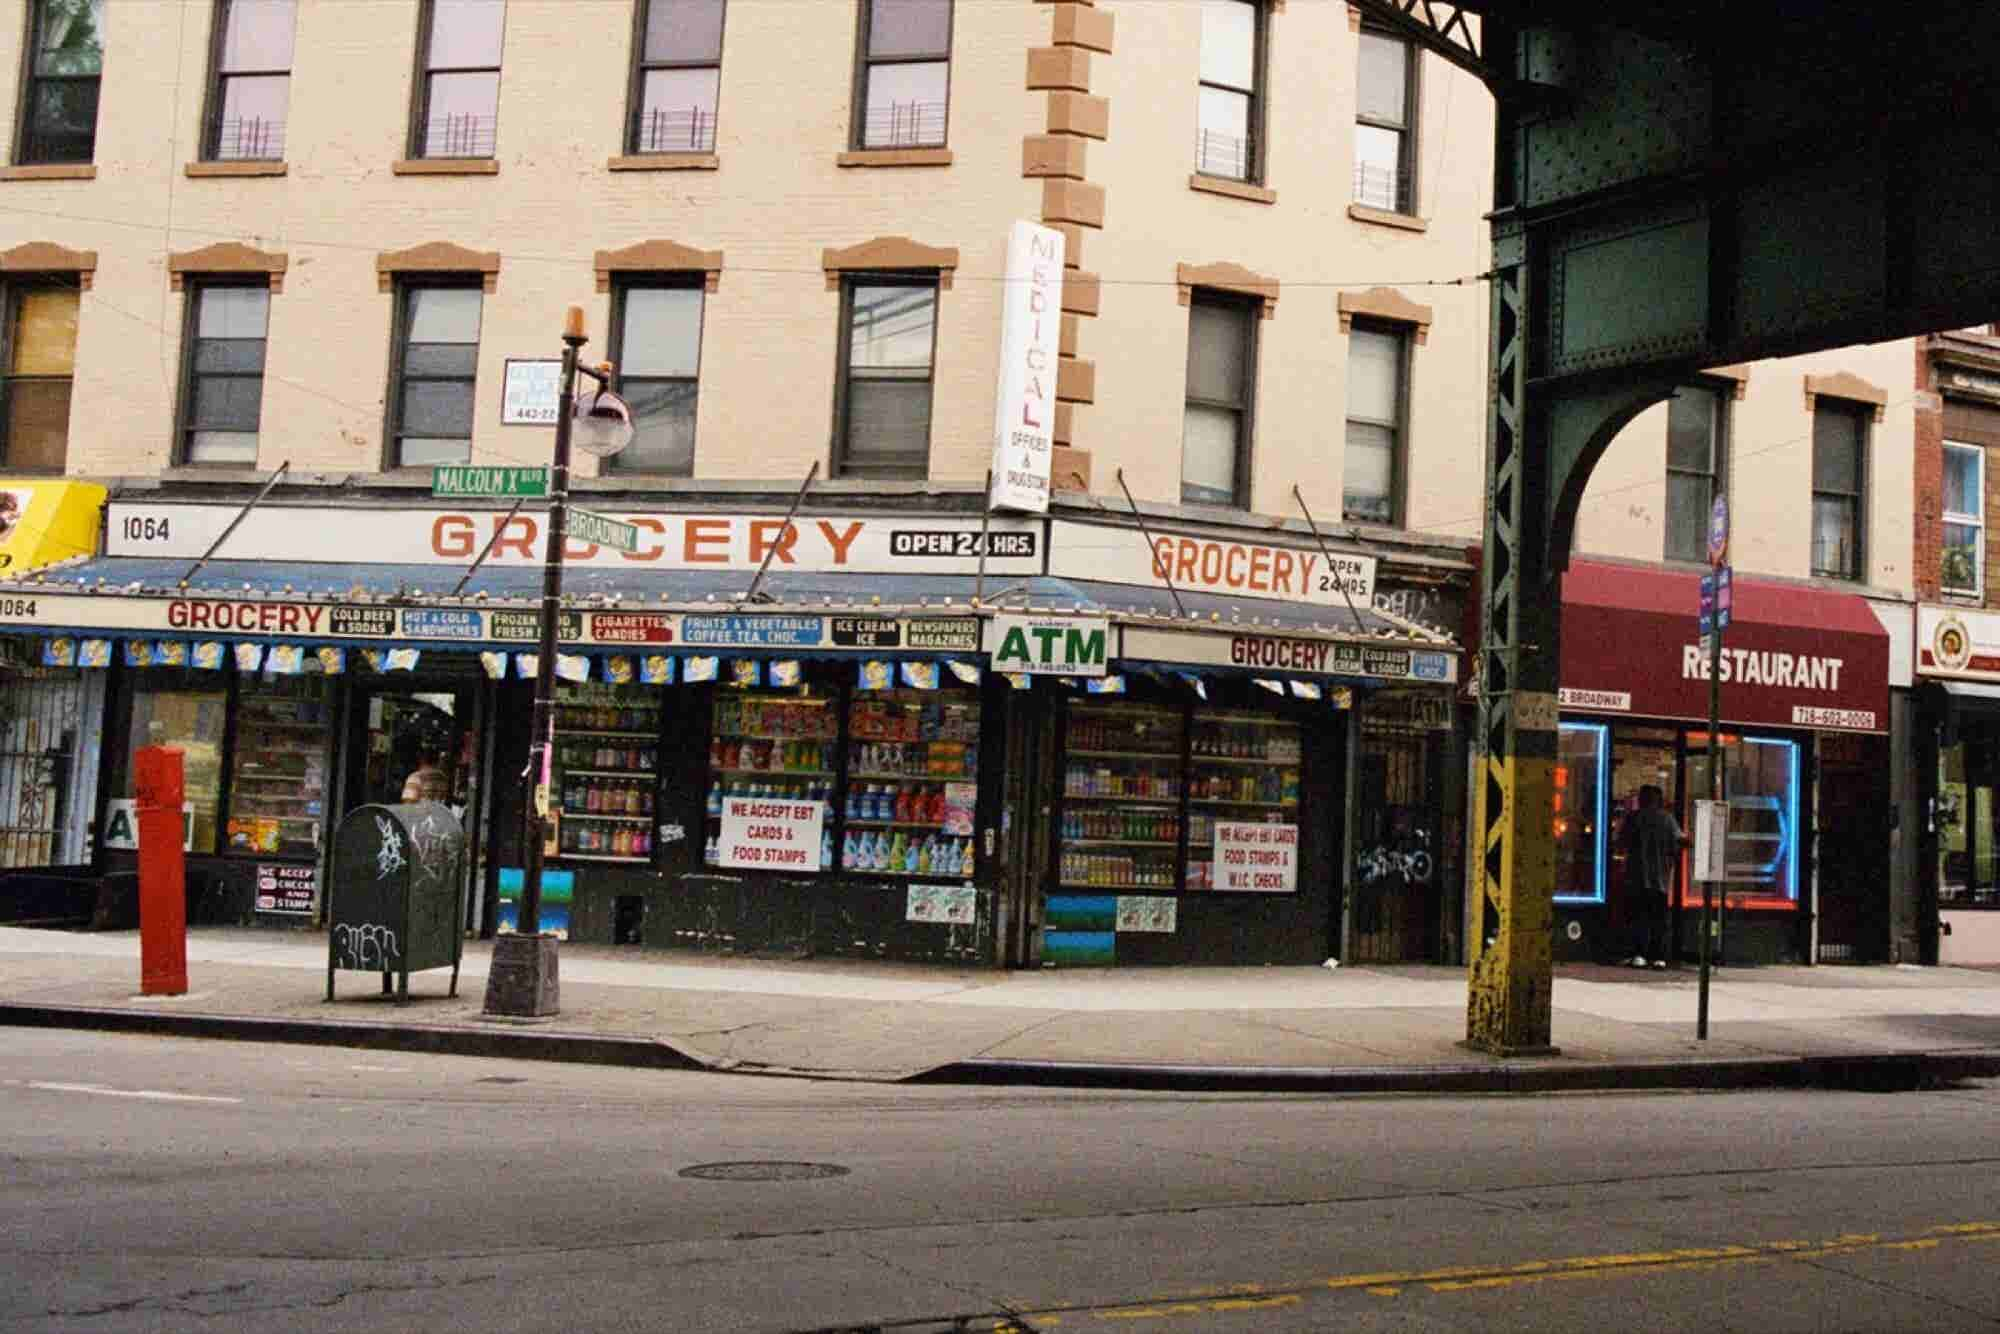 The Bodega Effect: Lessons In Branding From the Rise and Fall of a Sta...